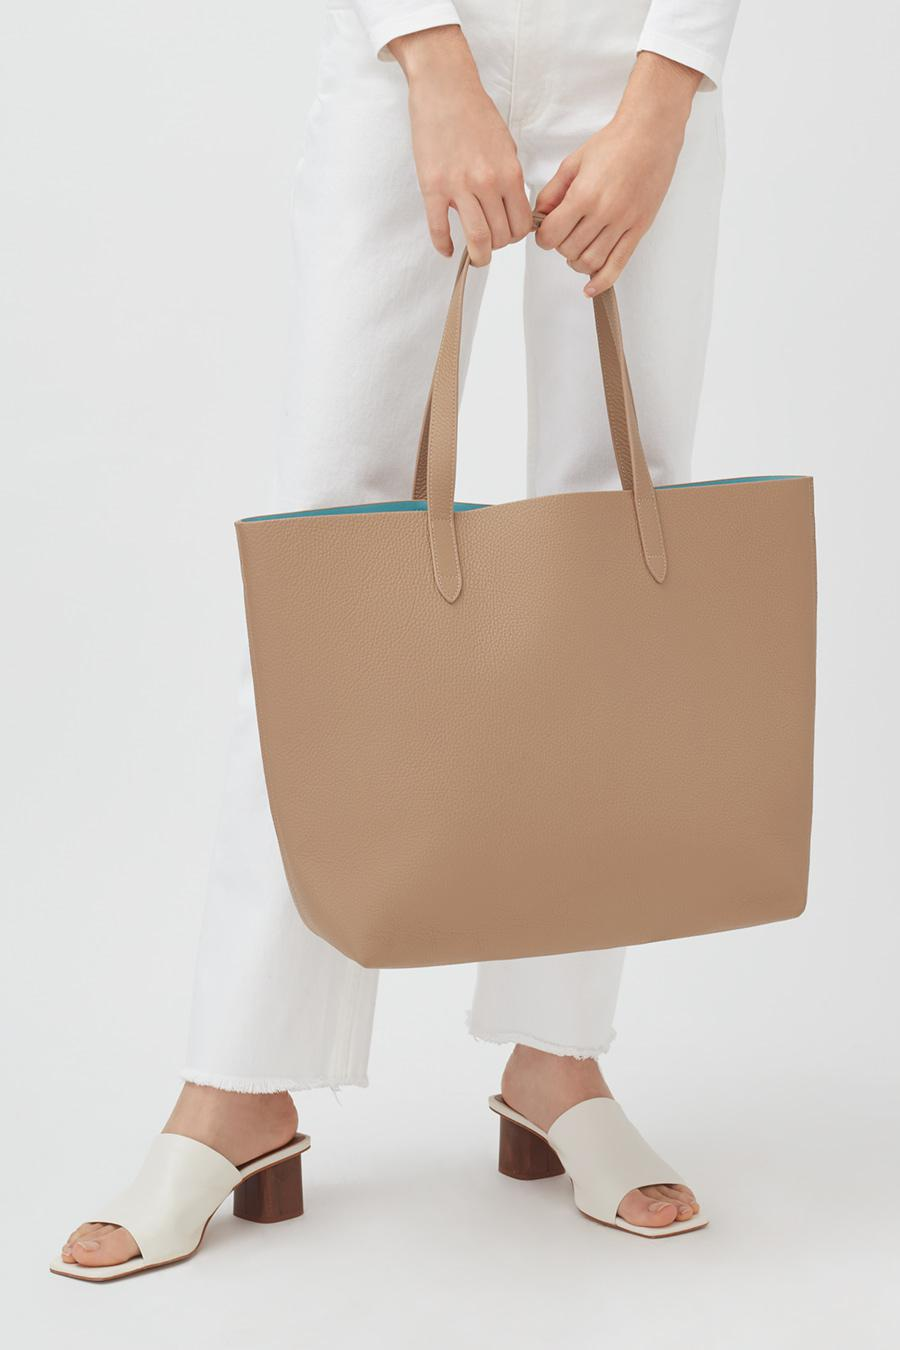 Women's Classic Structured Leather Tote Bag in Cappuccino/Blue | Pebbled Leather by Cuyana 5